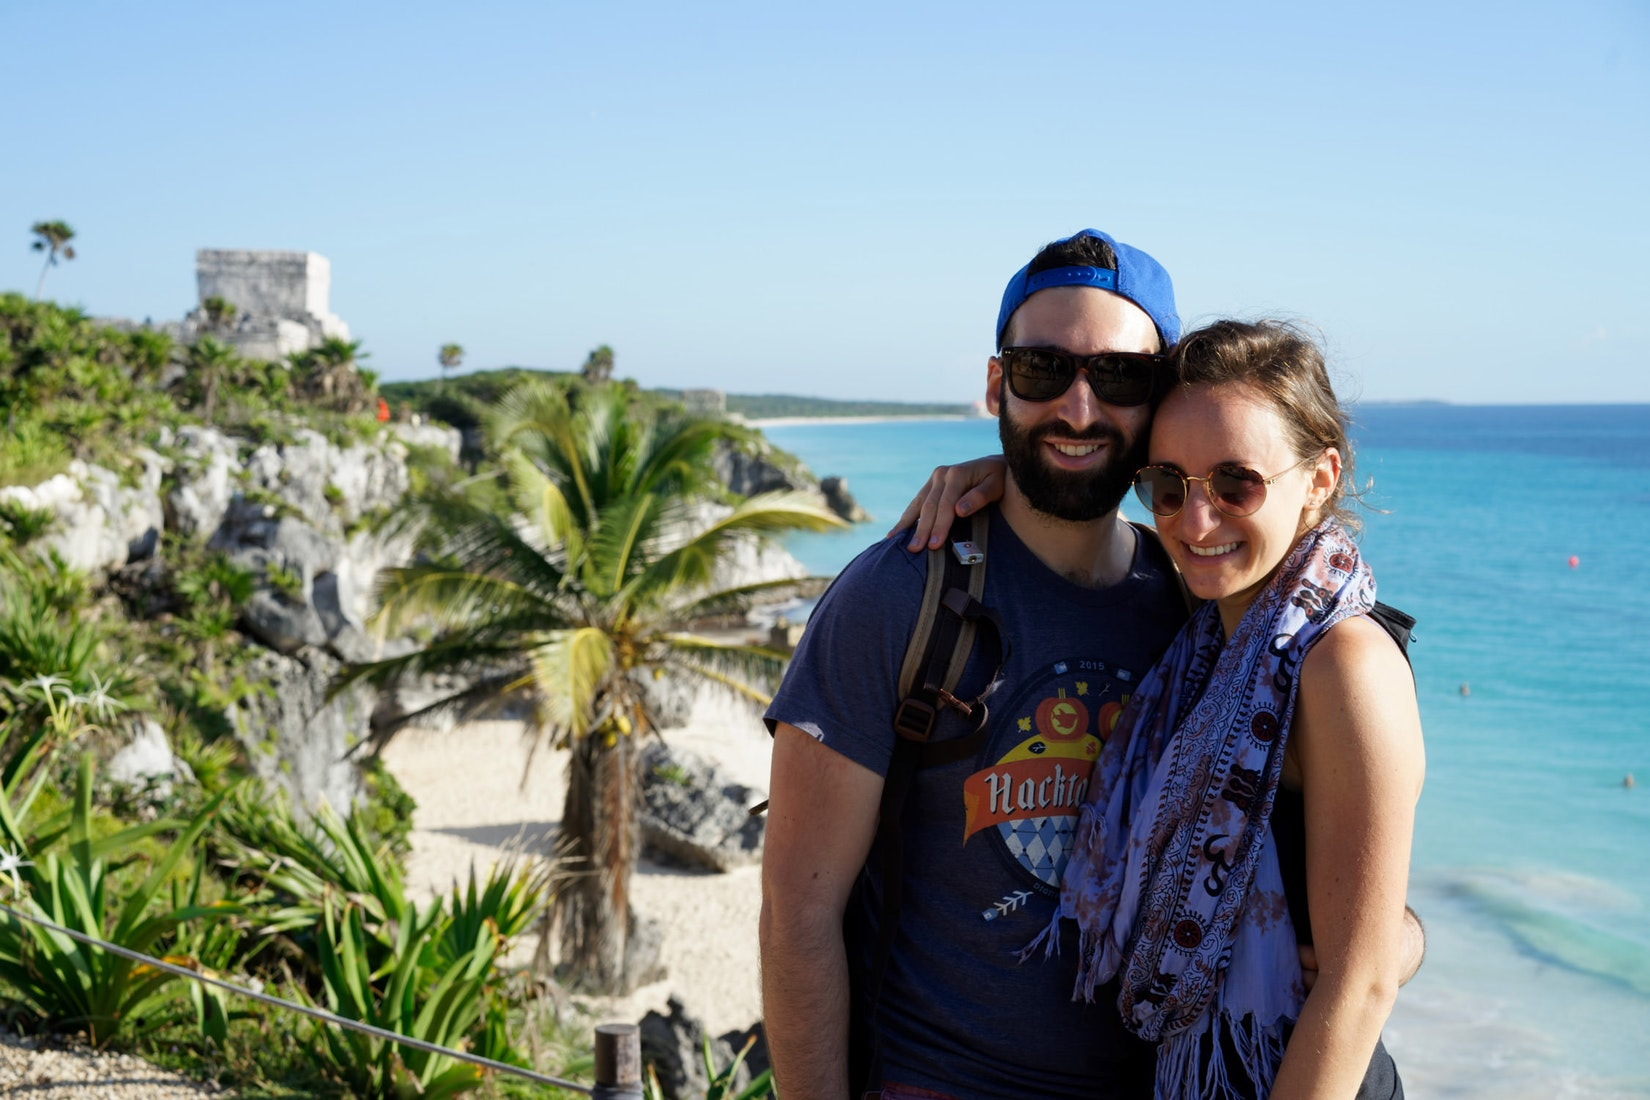 Becca and Dan at the Tulum Ruins